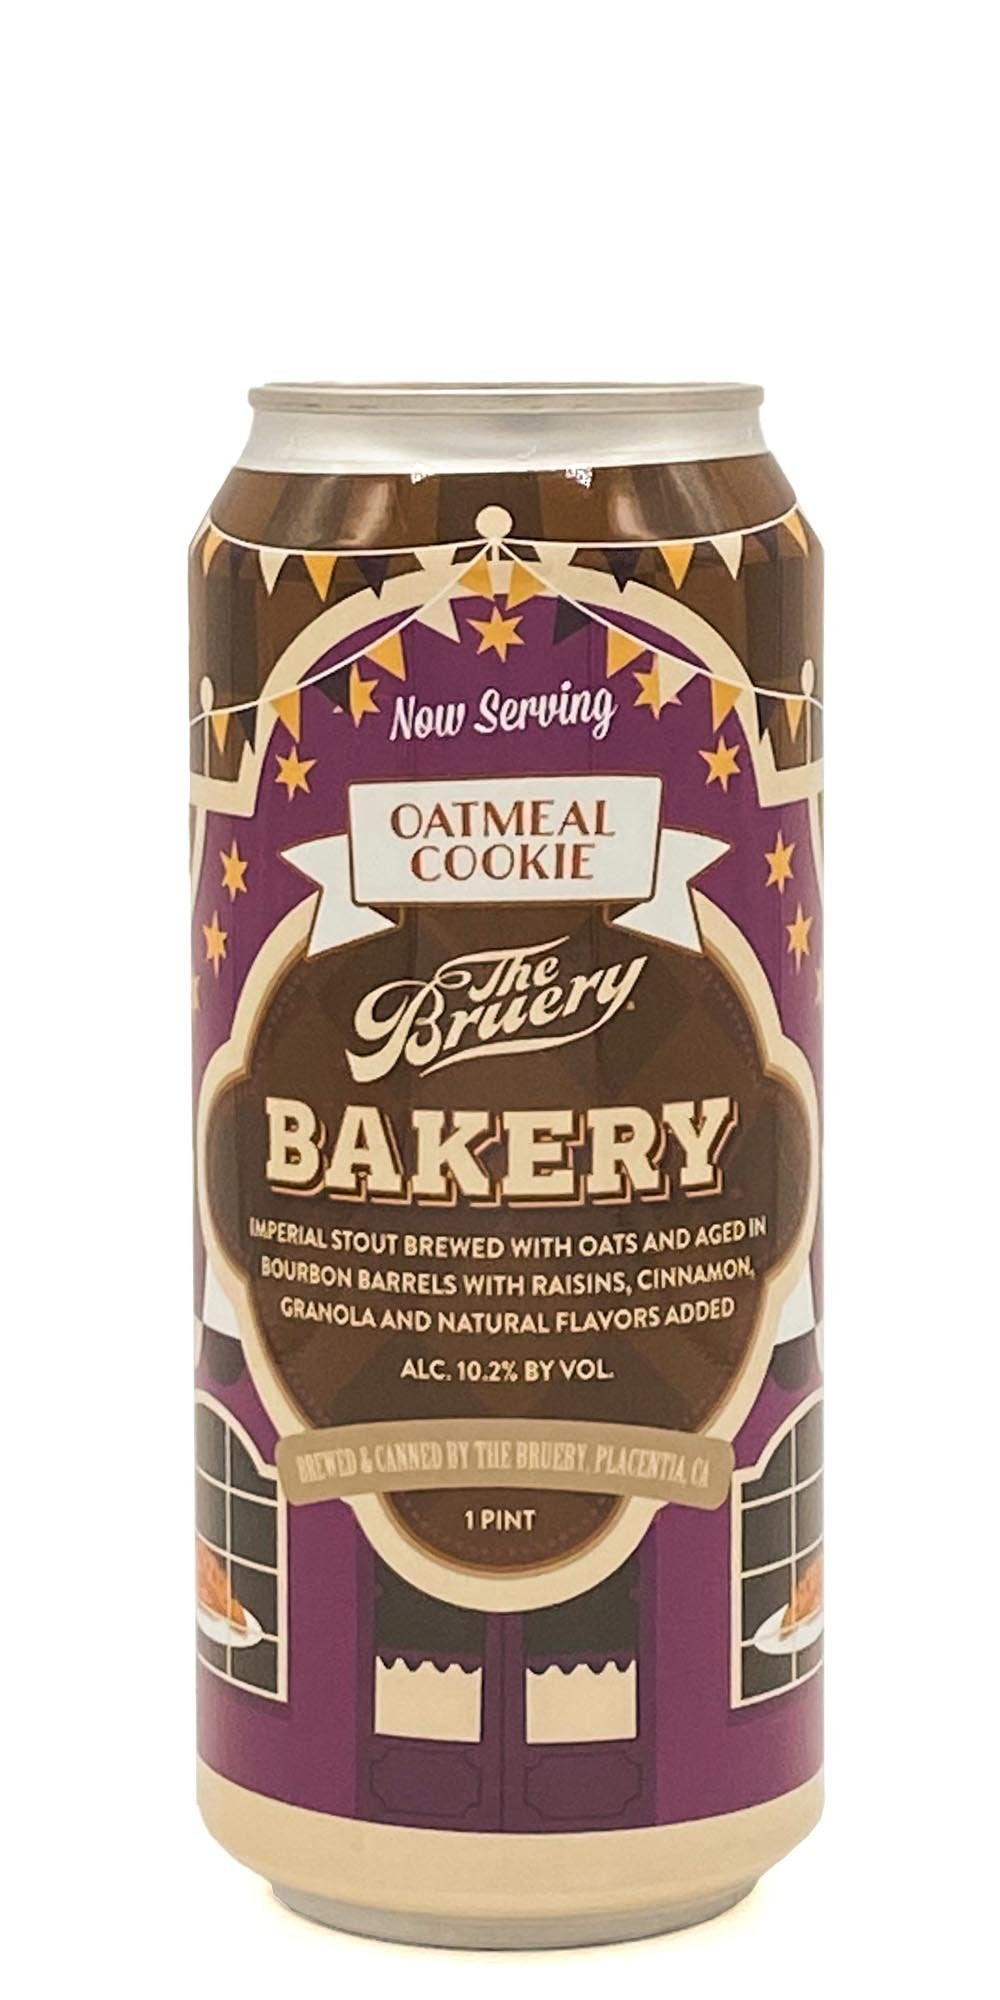 The Bruery - Bakery: Oatmeal Cookie - Drikbeer - Order Craft Beer Online